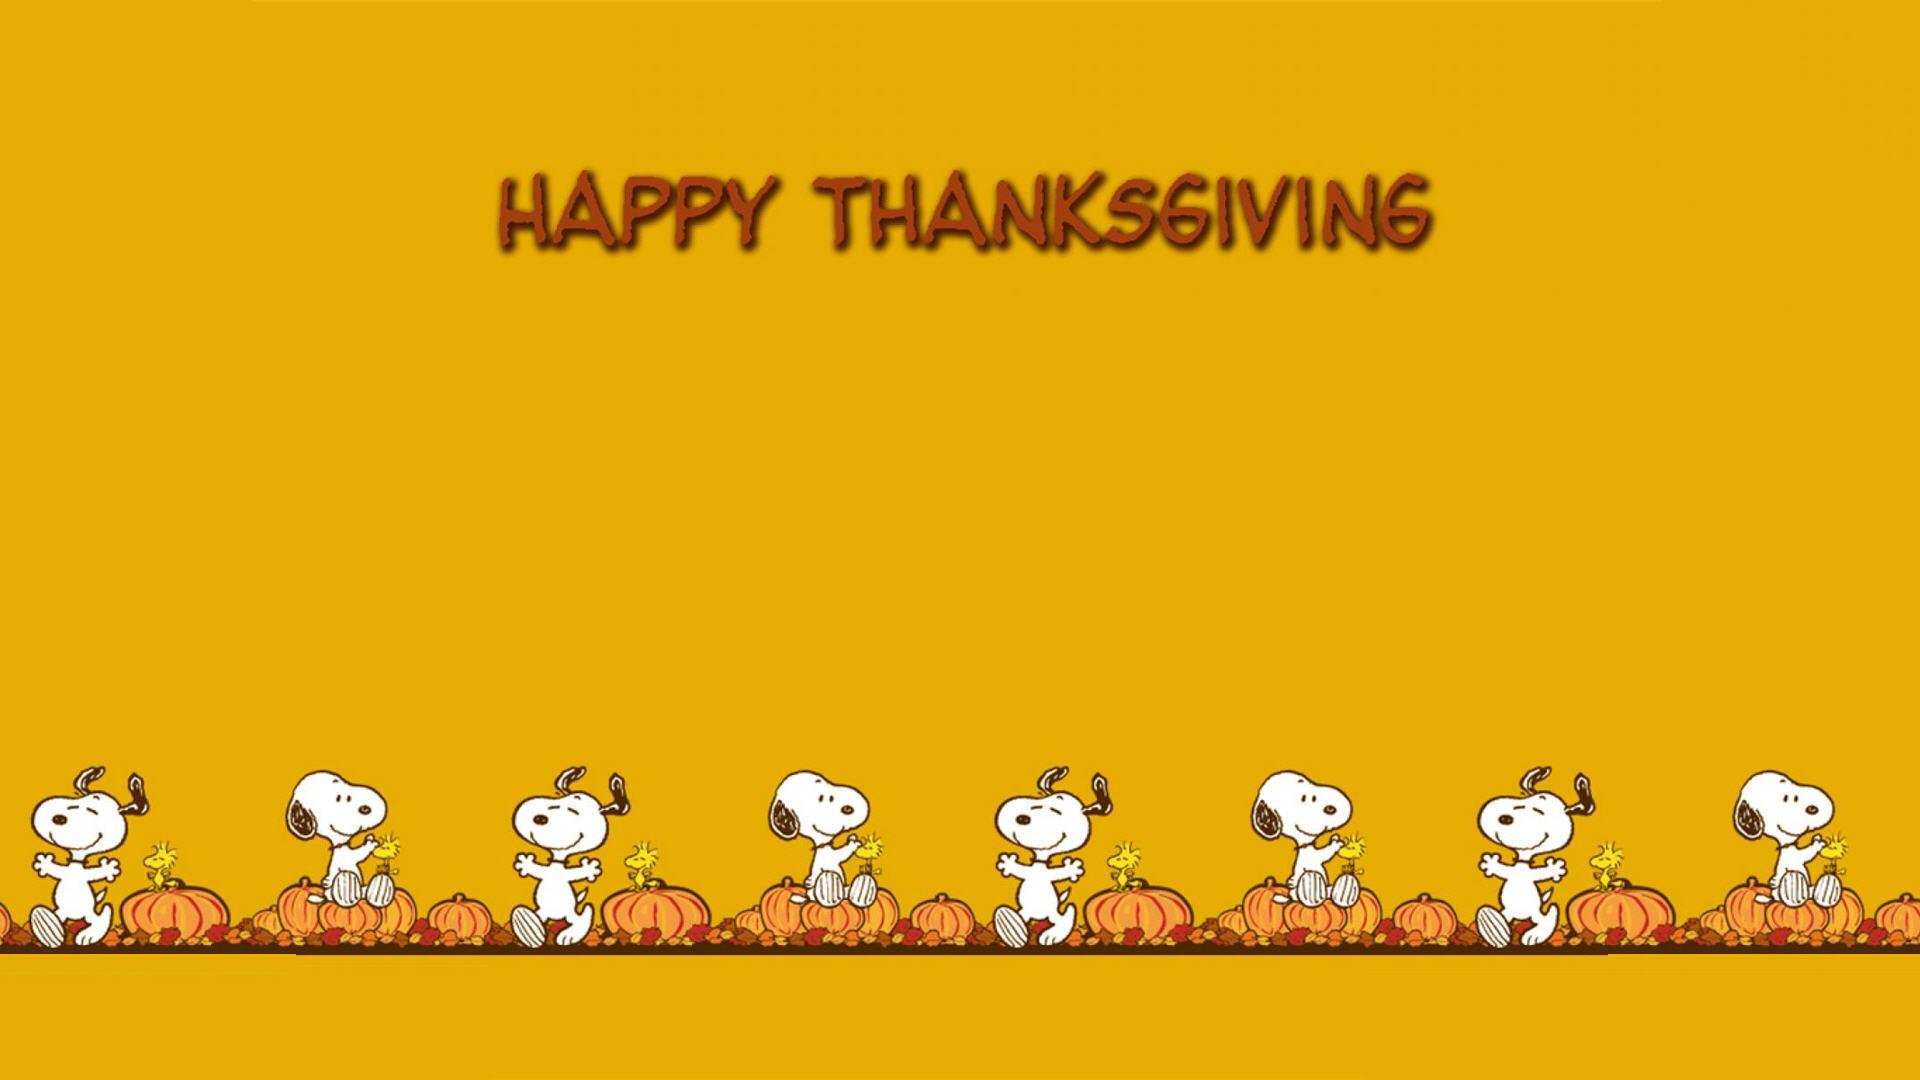 Funny Thanksgiving Wallpaper Backgrounds #6977481